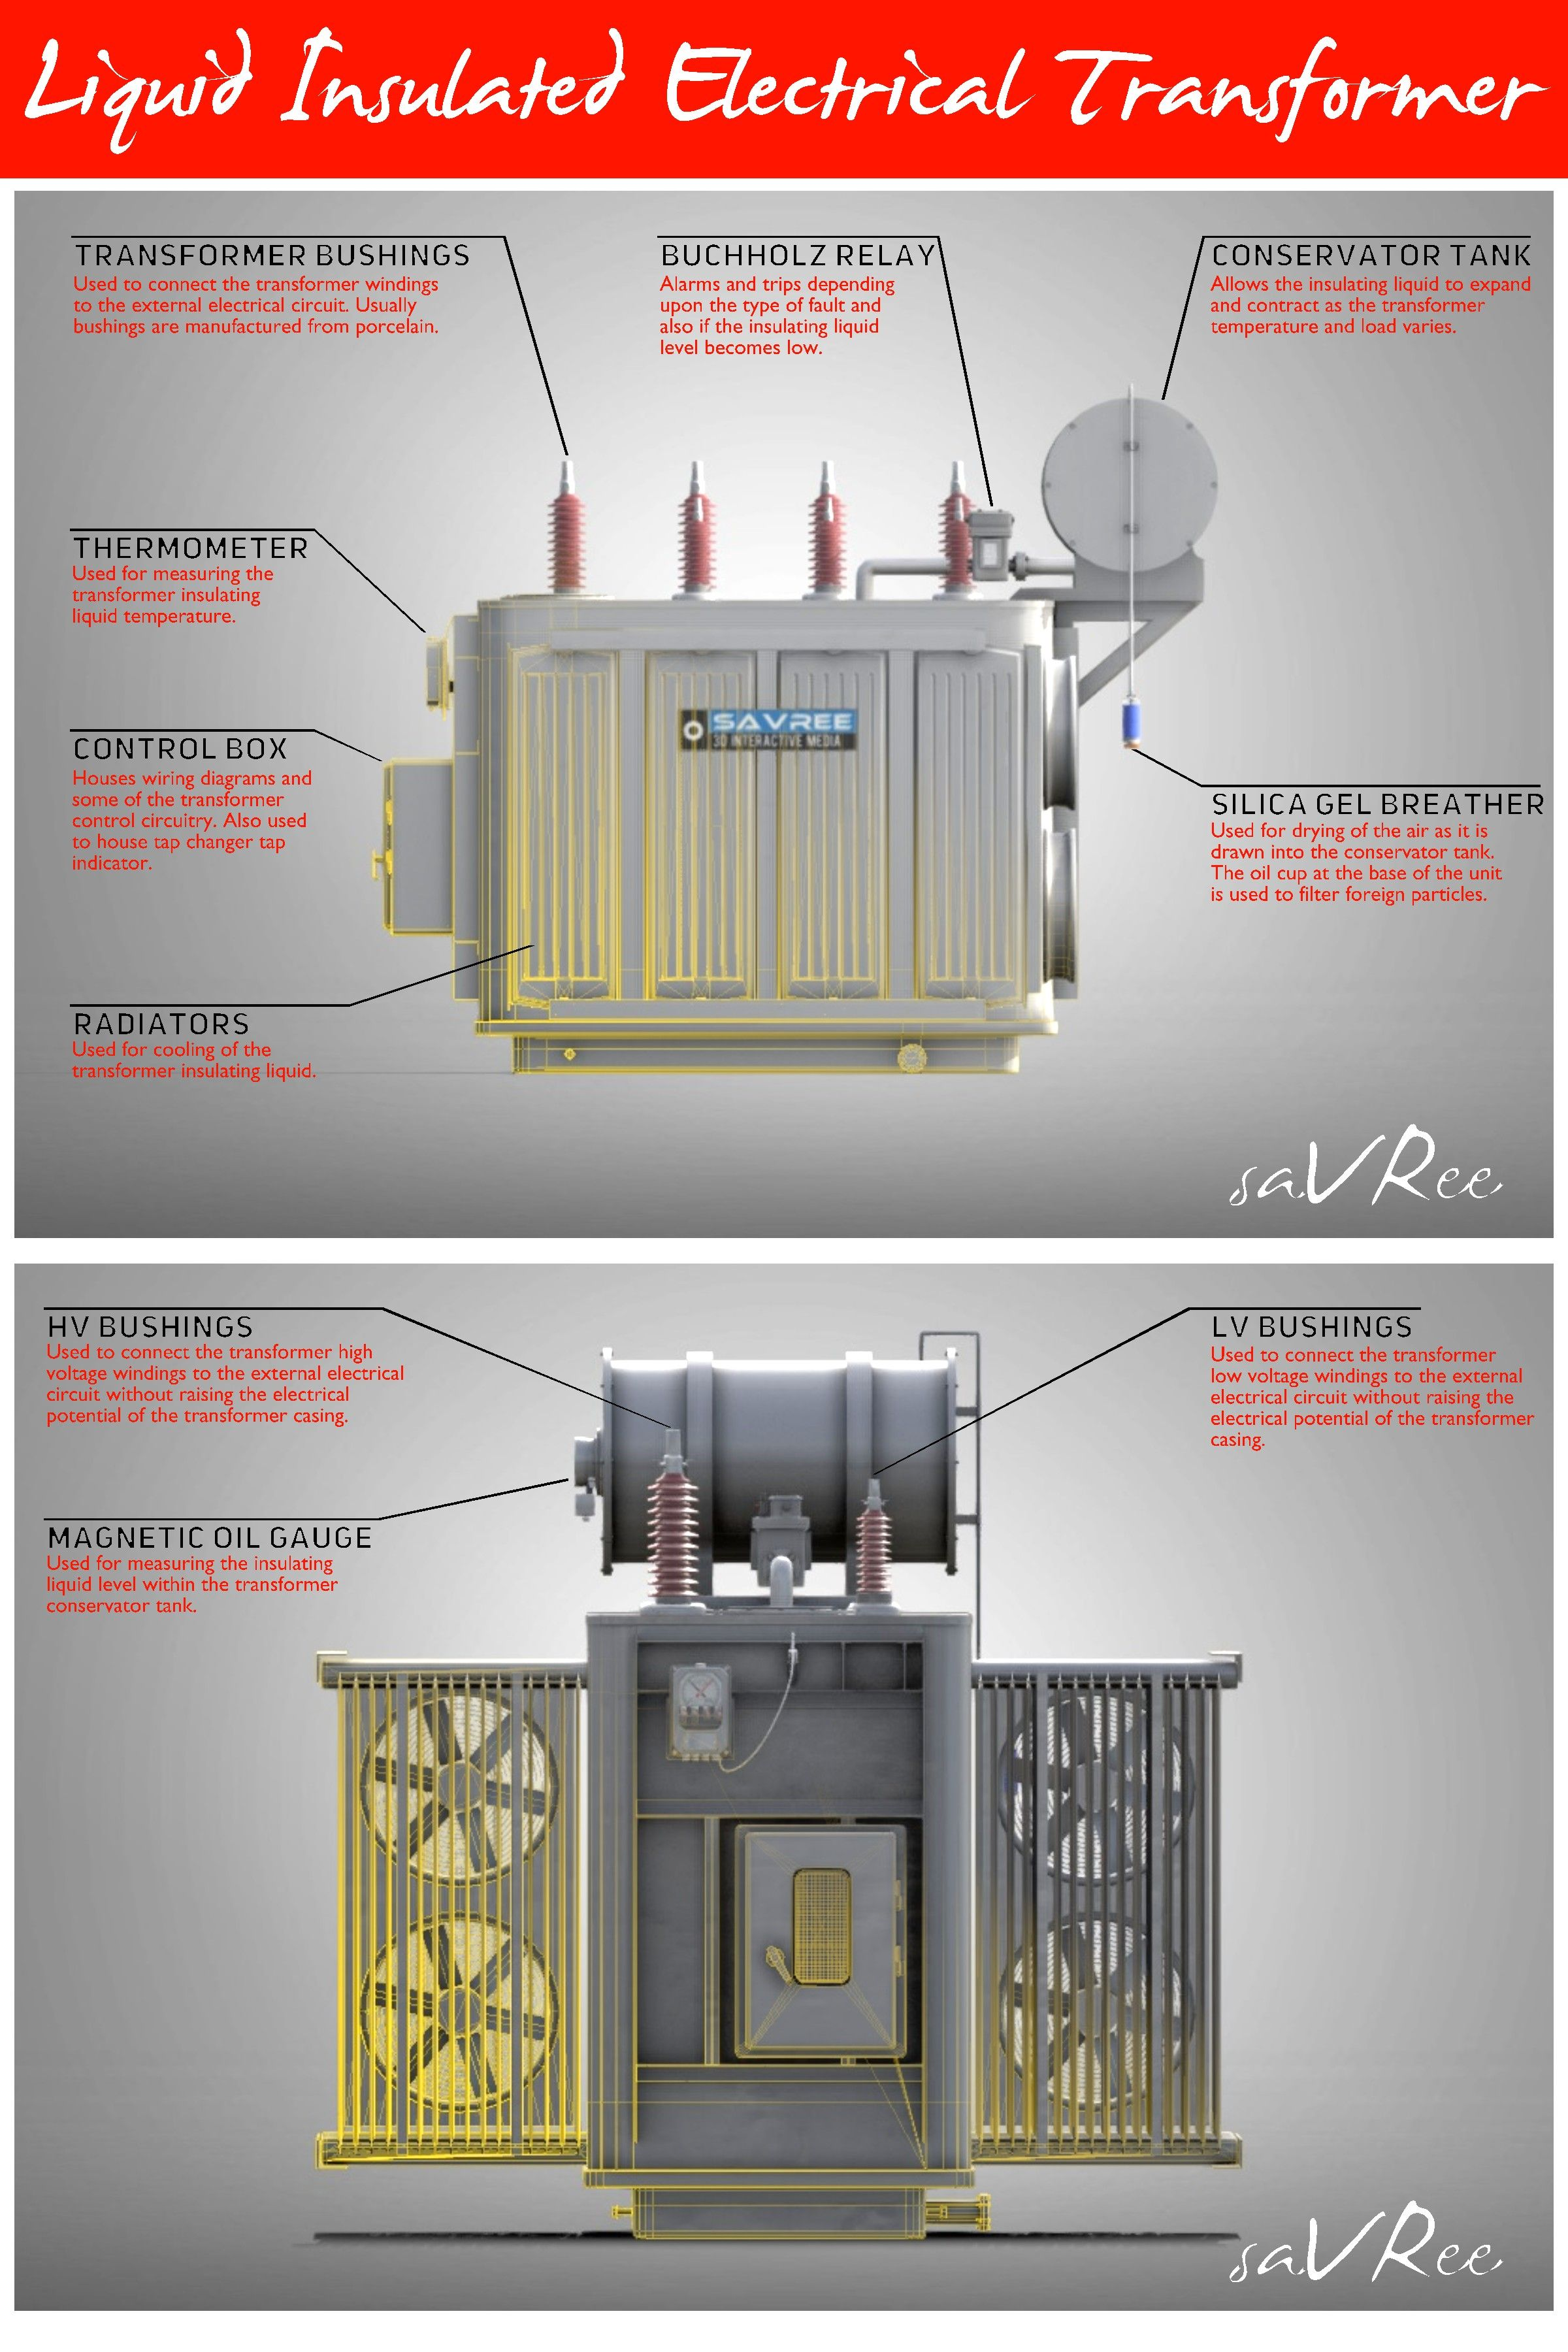 hight resolution of this pin shows the liquid insulated electrical transformer used in the power engineering industry its